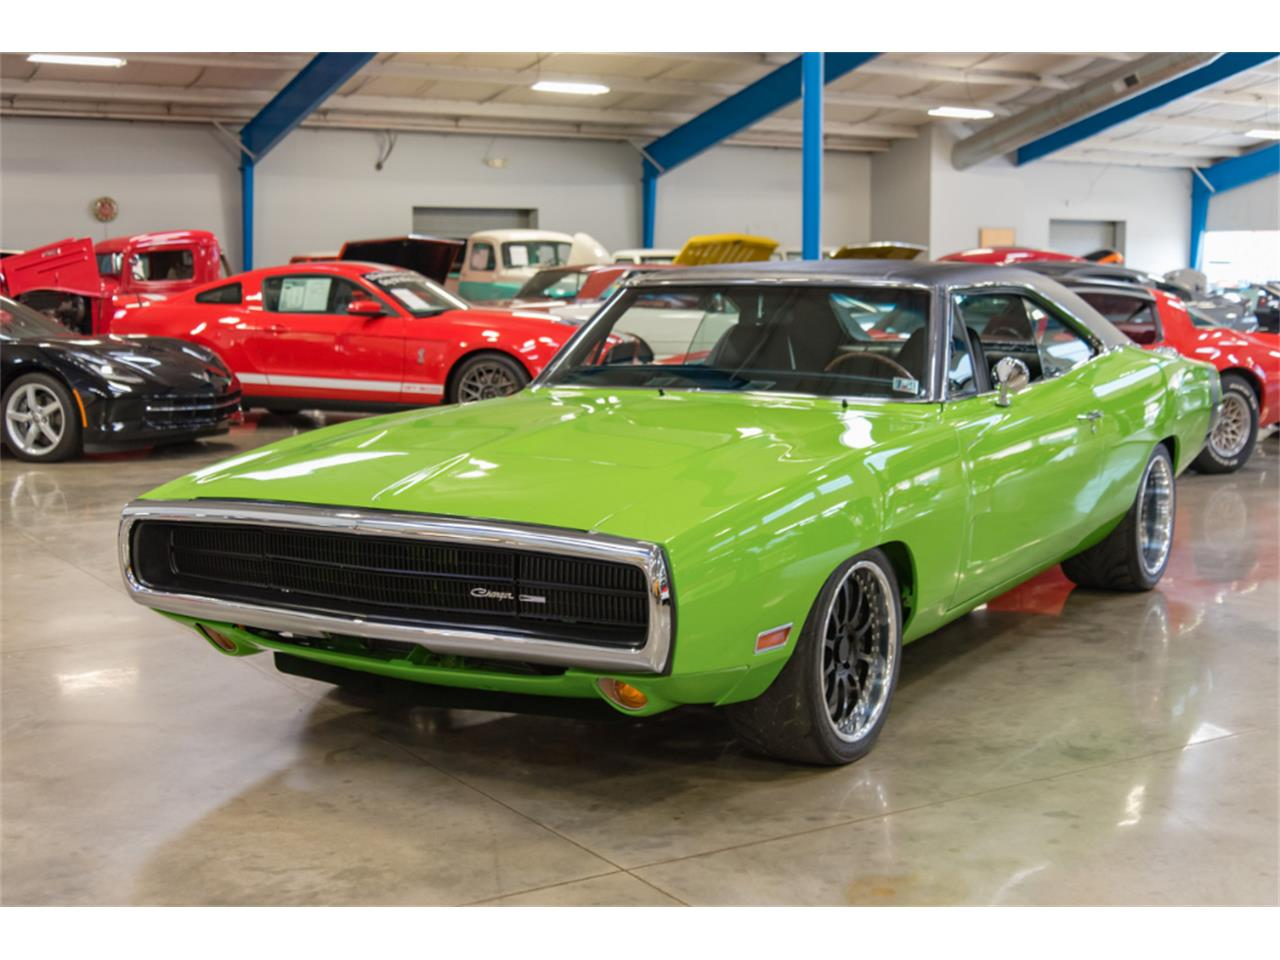 Large Picture of Classic '70 Dodge Charger located in Ohio - $135,000.00 - MB1Z